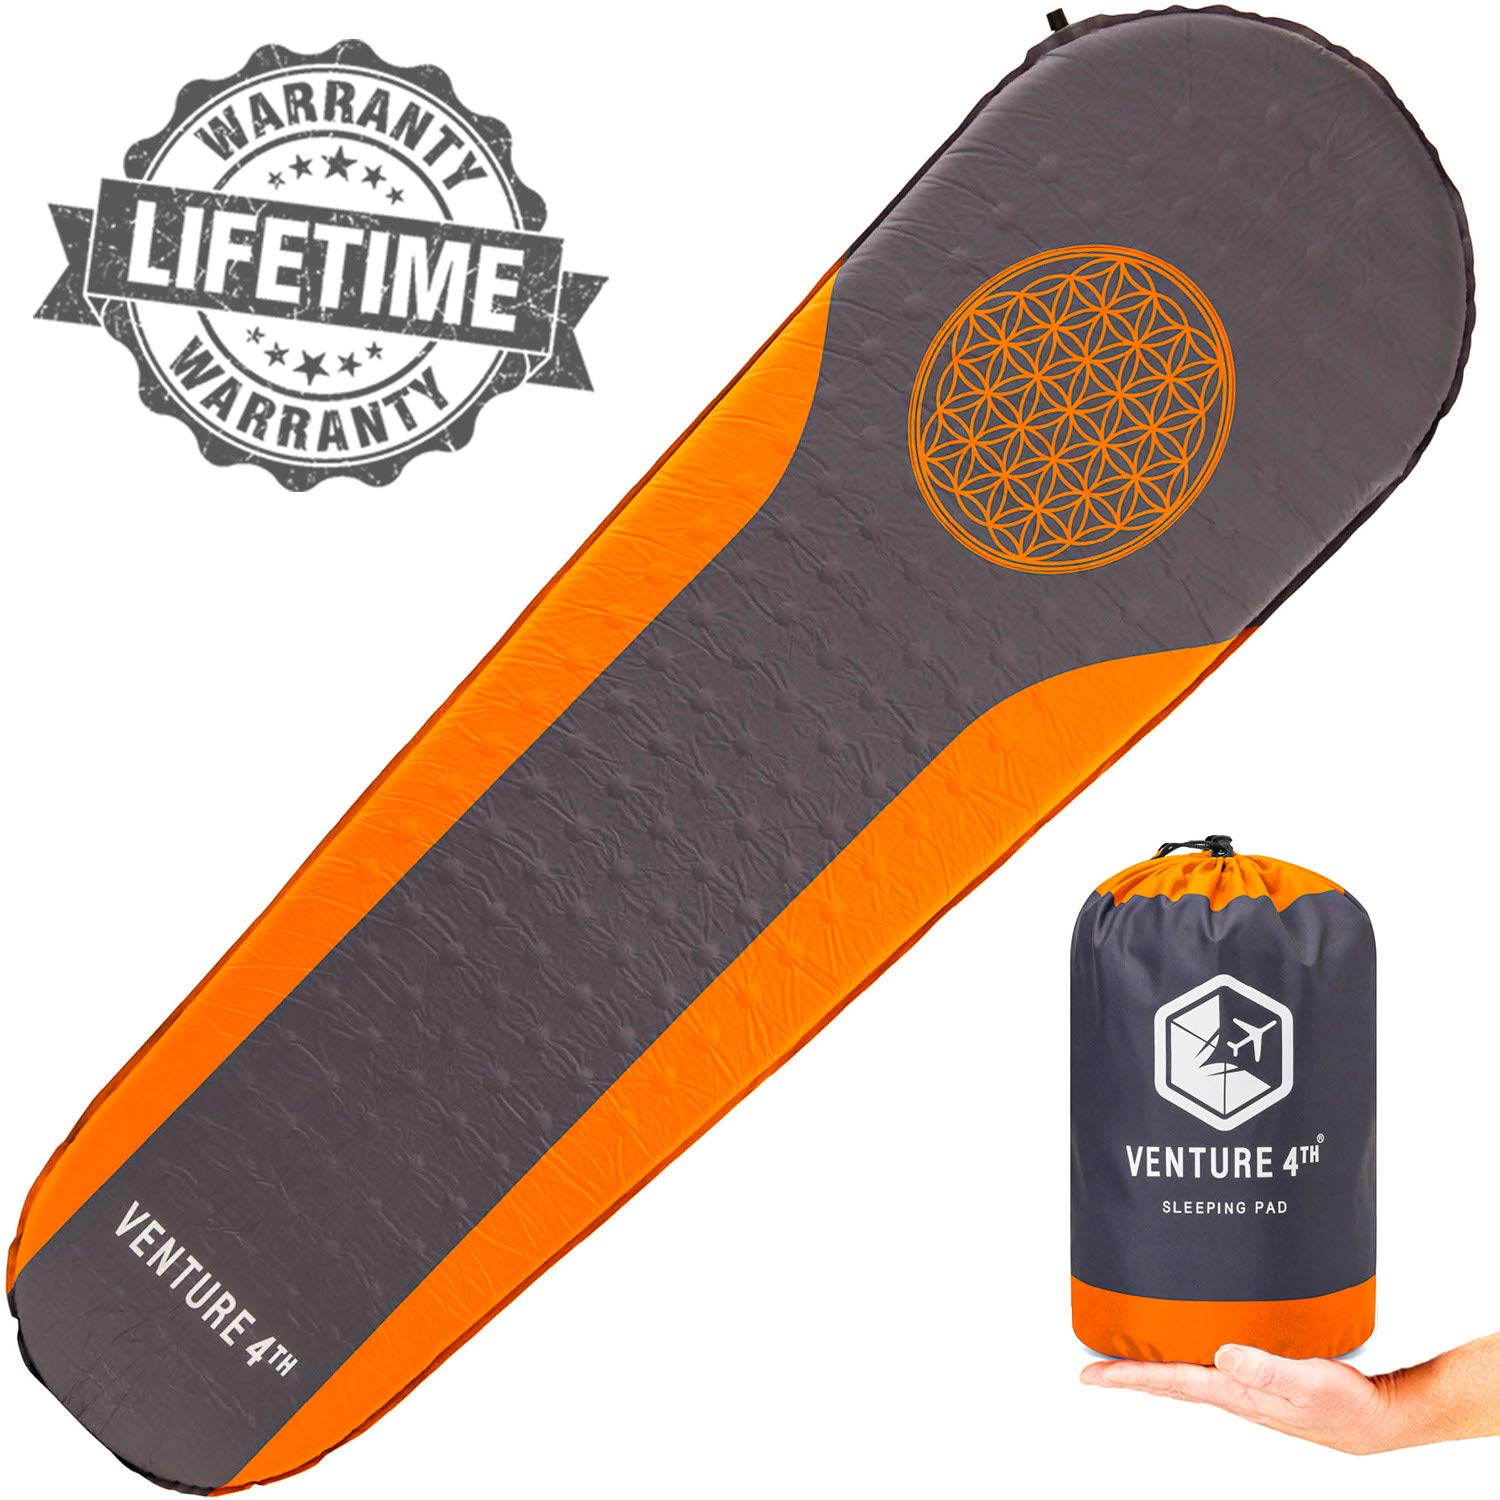 VENTURE 4TH Sleeping Pad for Camping - No Pump or Lung Power Required - Warm, Quiet and Supportive Bedroll for a Comfortable Night's Sleep - Compact and Ultra Light Airpad (Orange/Gray) by VENTURE 4TH